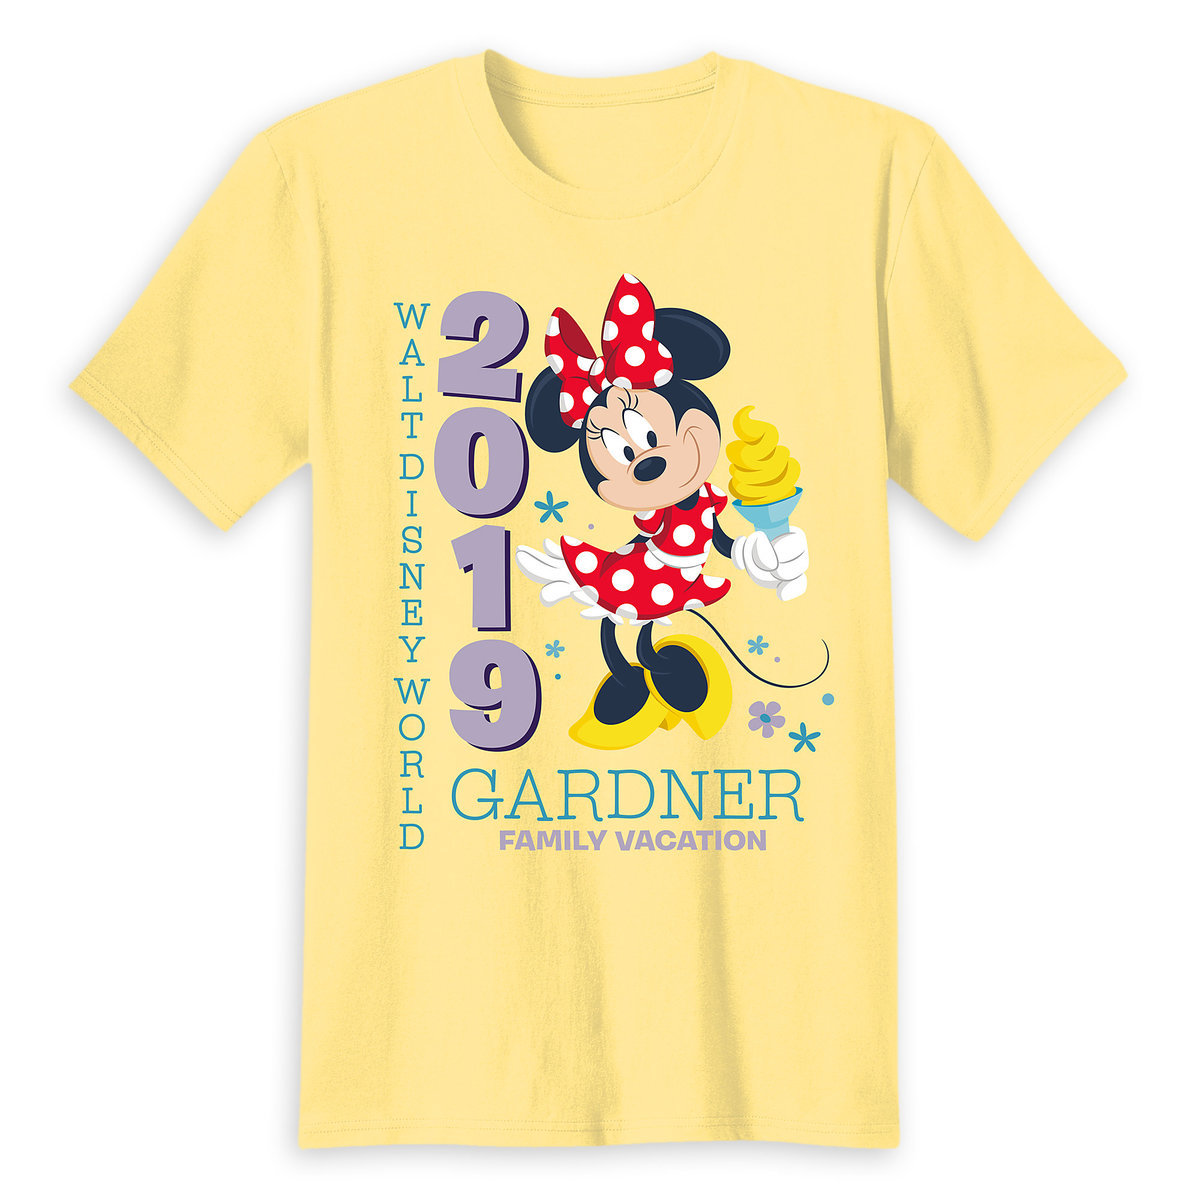 ad2b19a3 Product Image of Minnie Mouse Family Vacation T-Shirt for Adults - Walt  Disney World